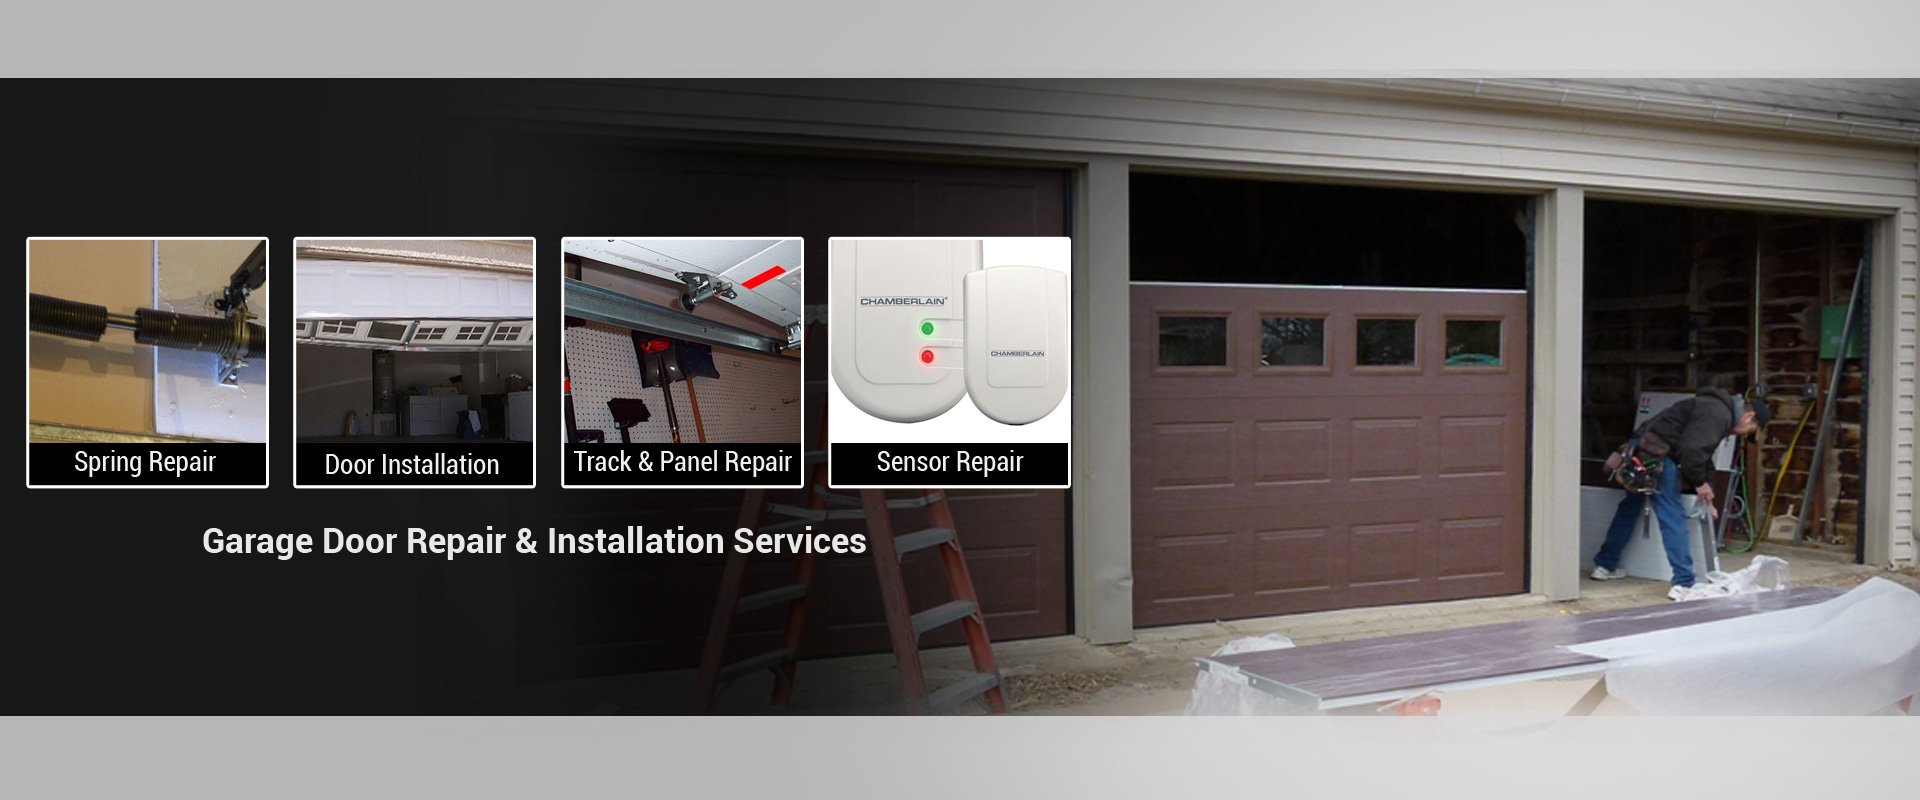 Best Garage Door Repair Thousand Oaks